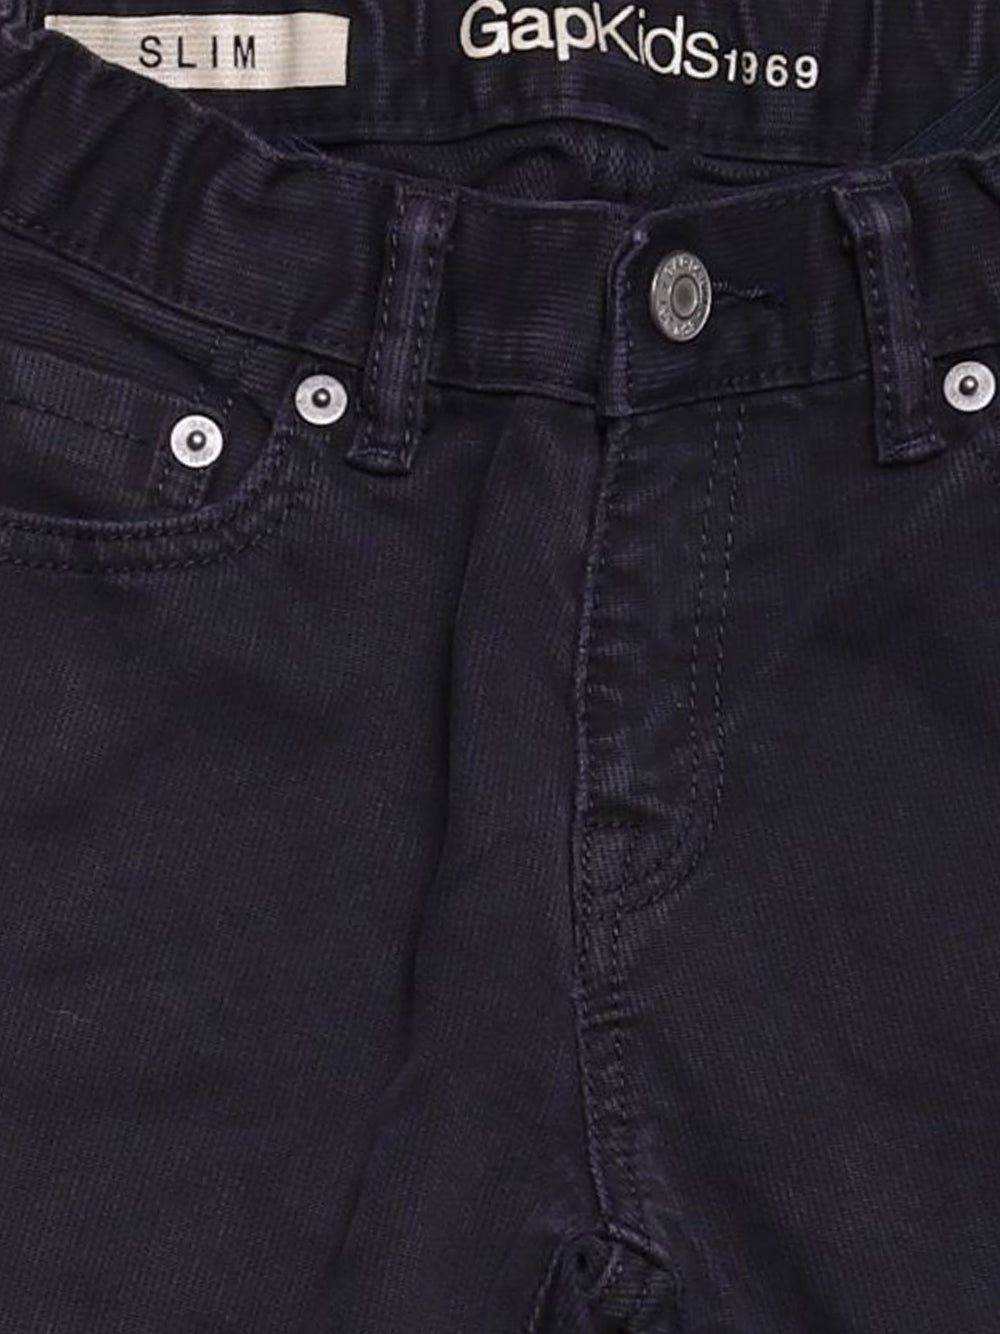 Detail photo of Preloved Gap Black Girl's trousers - size 5-6 yrs